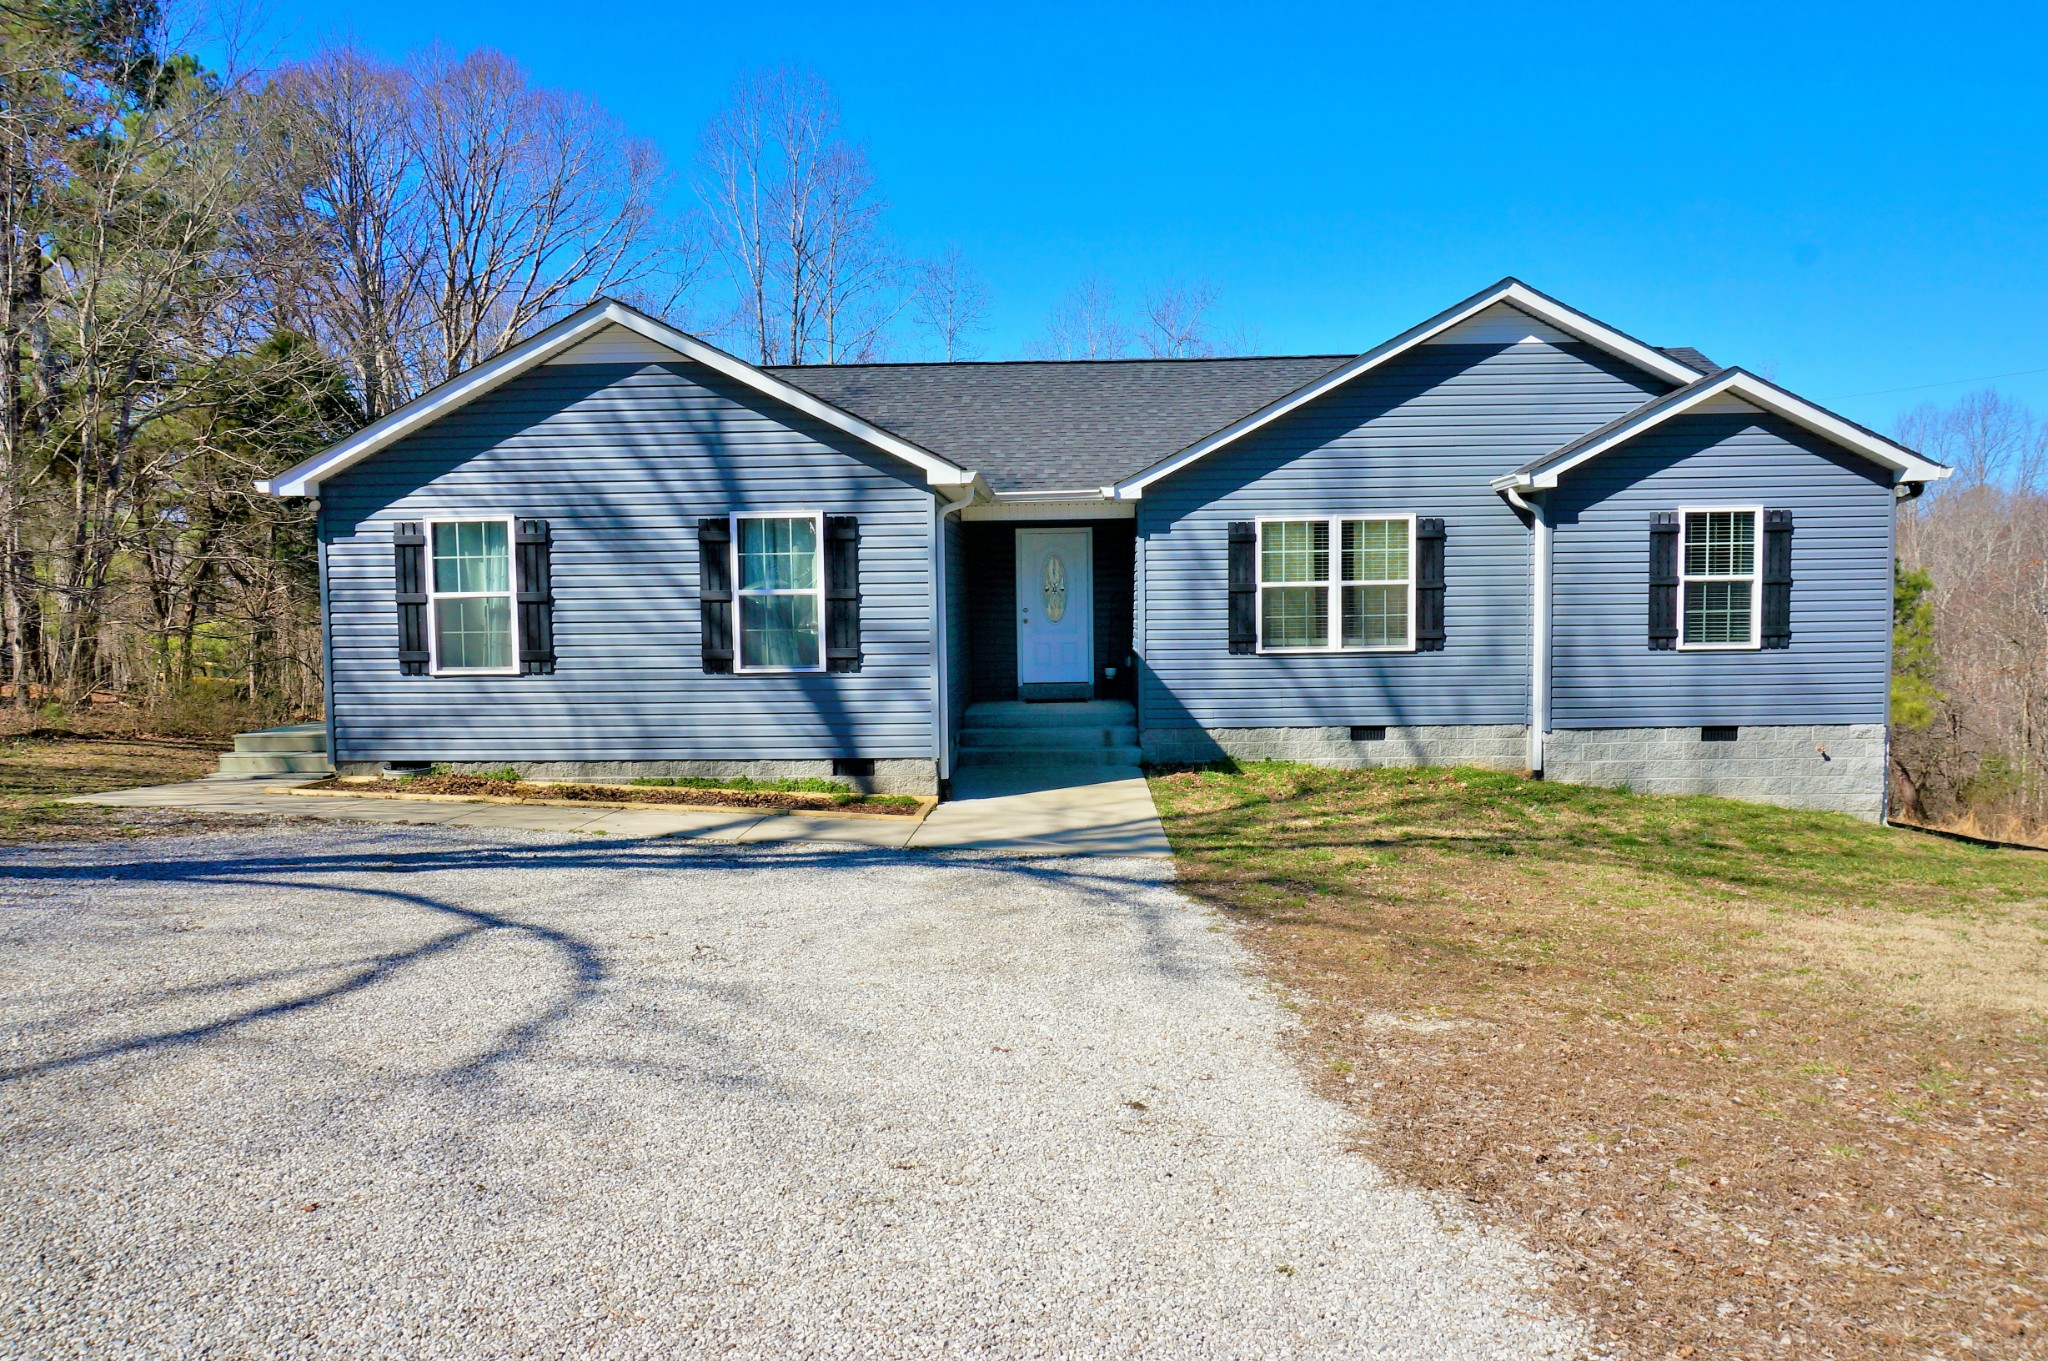 3491 Trace Creek Rd Property Photo - White Bluff, TN real estate listing